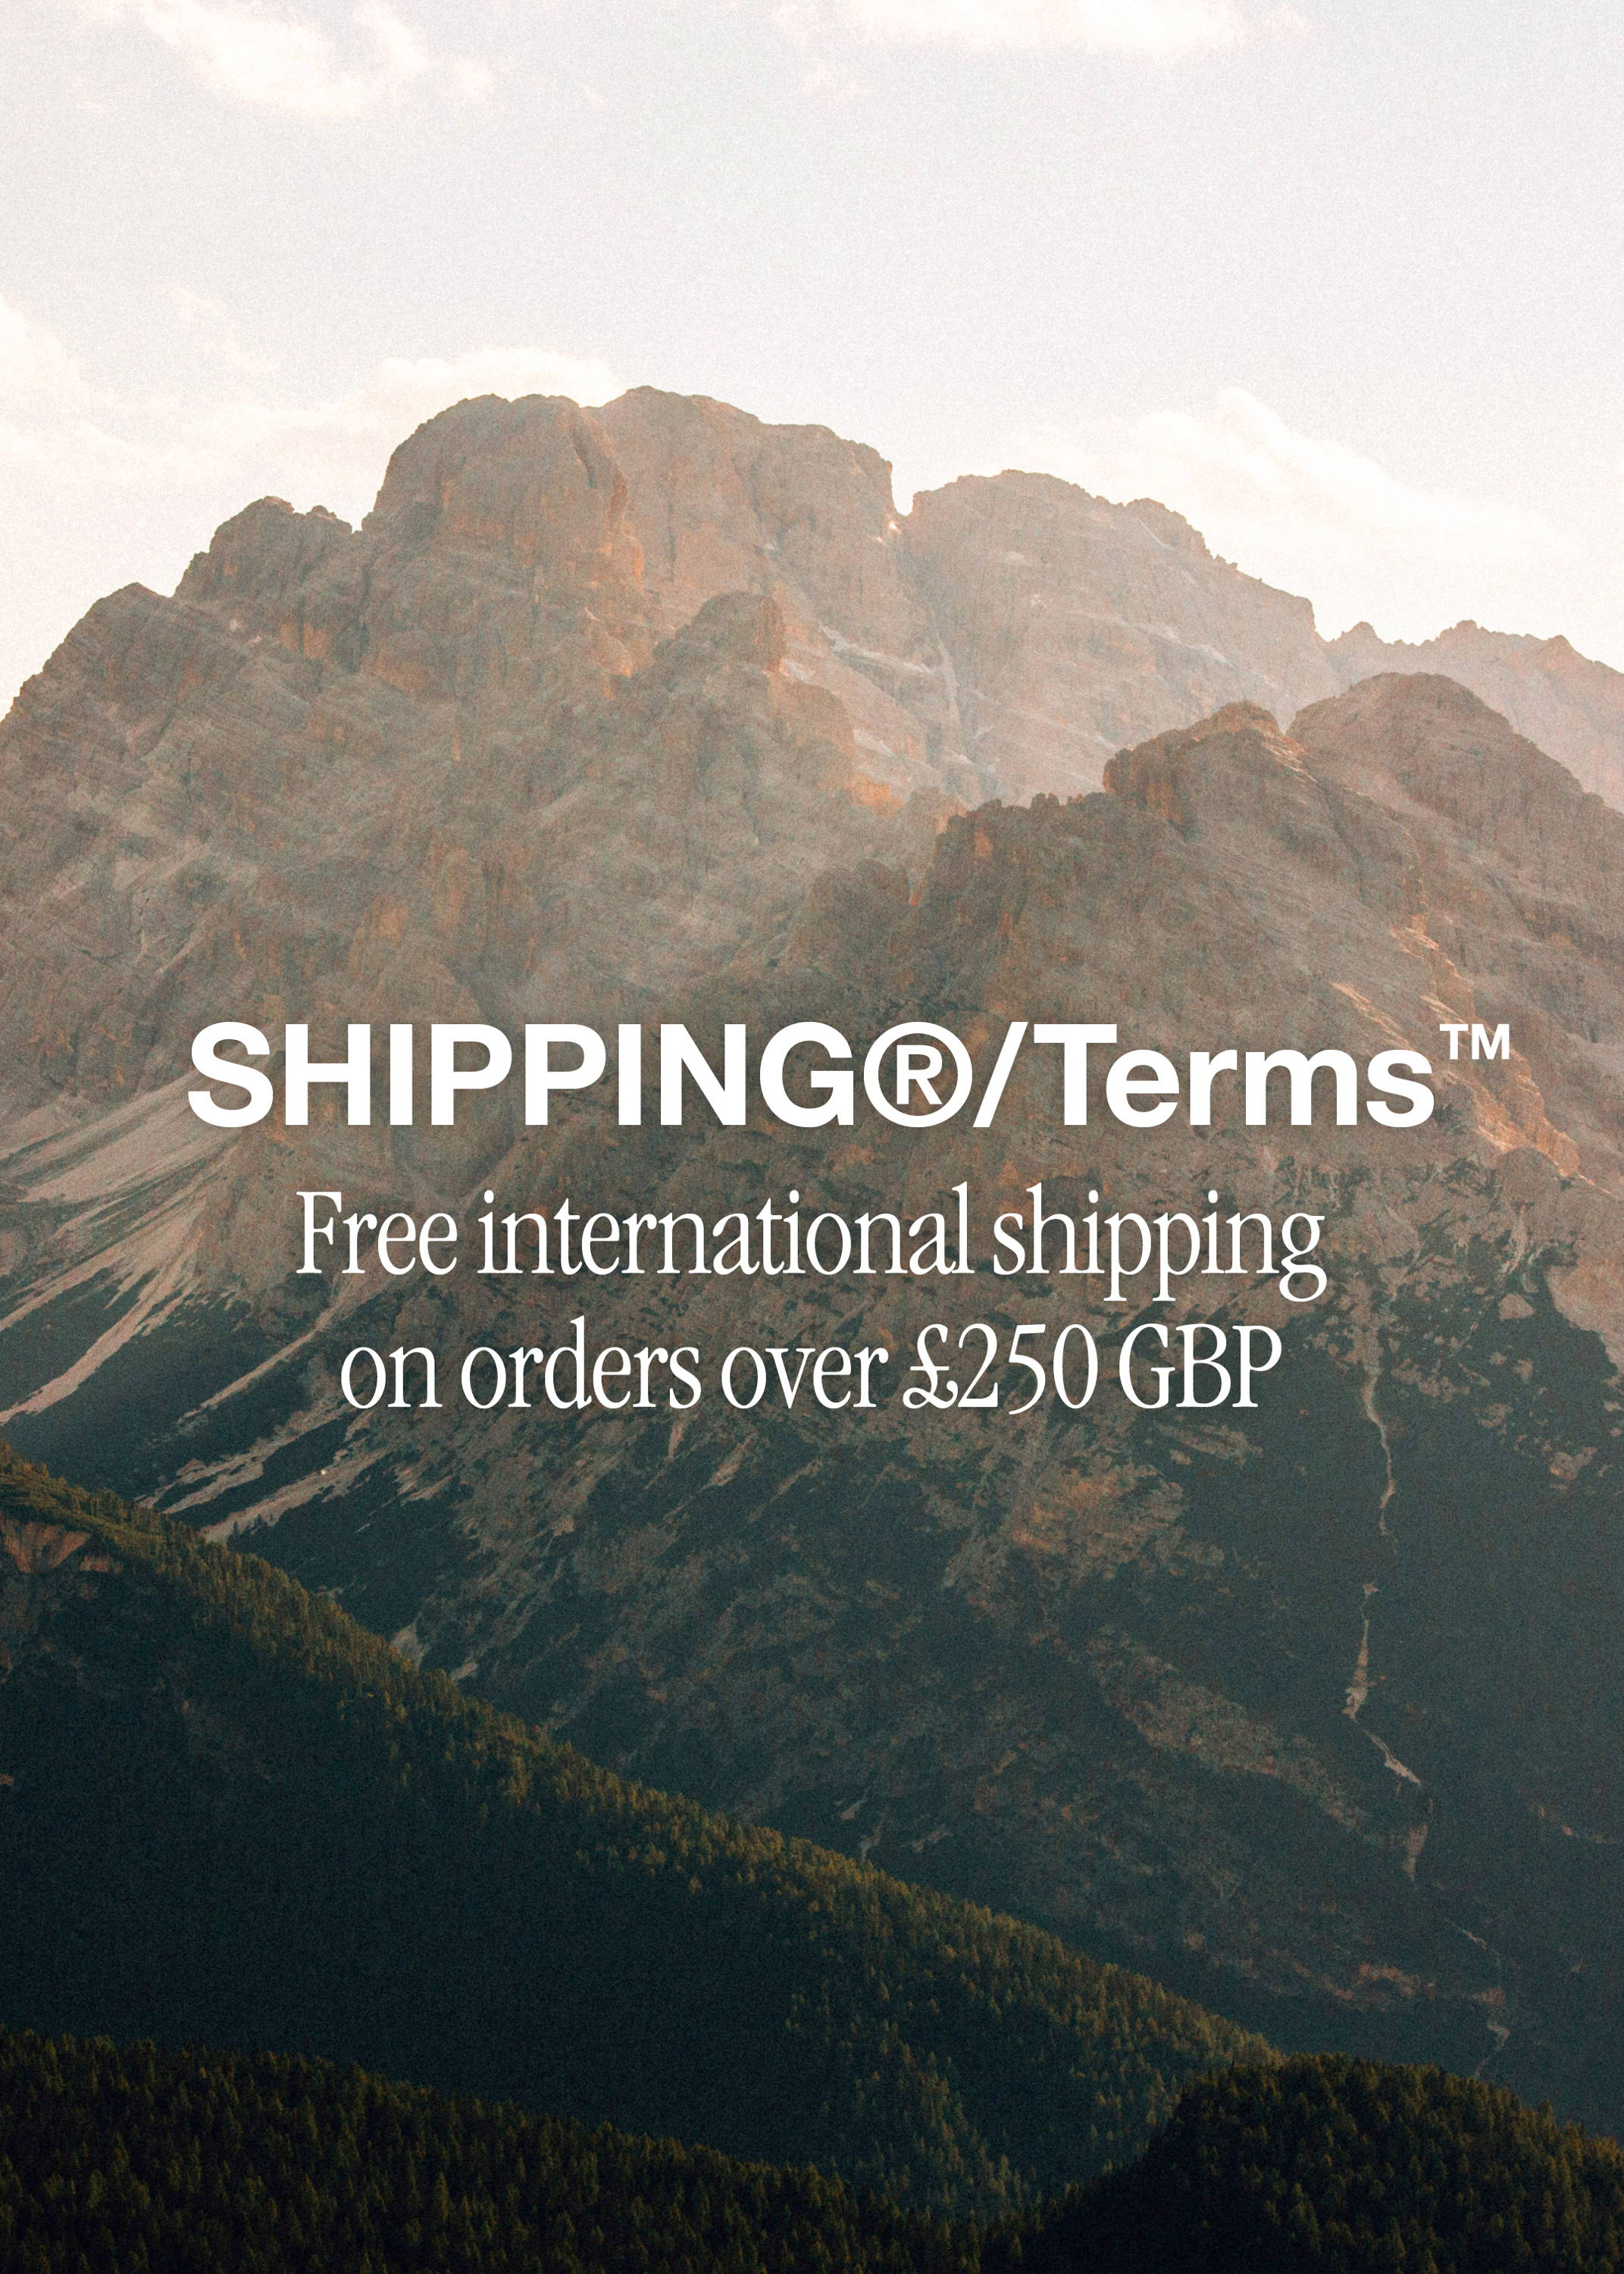 Shipping terms.